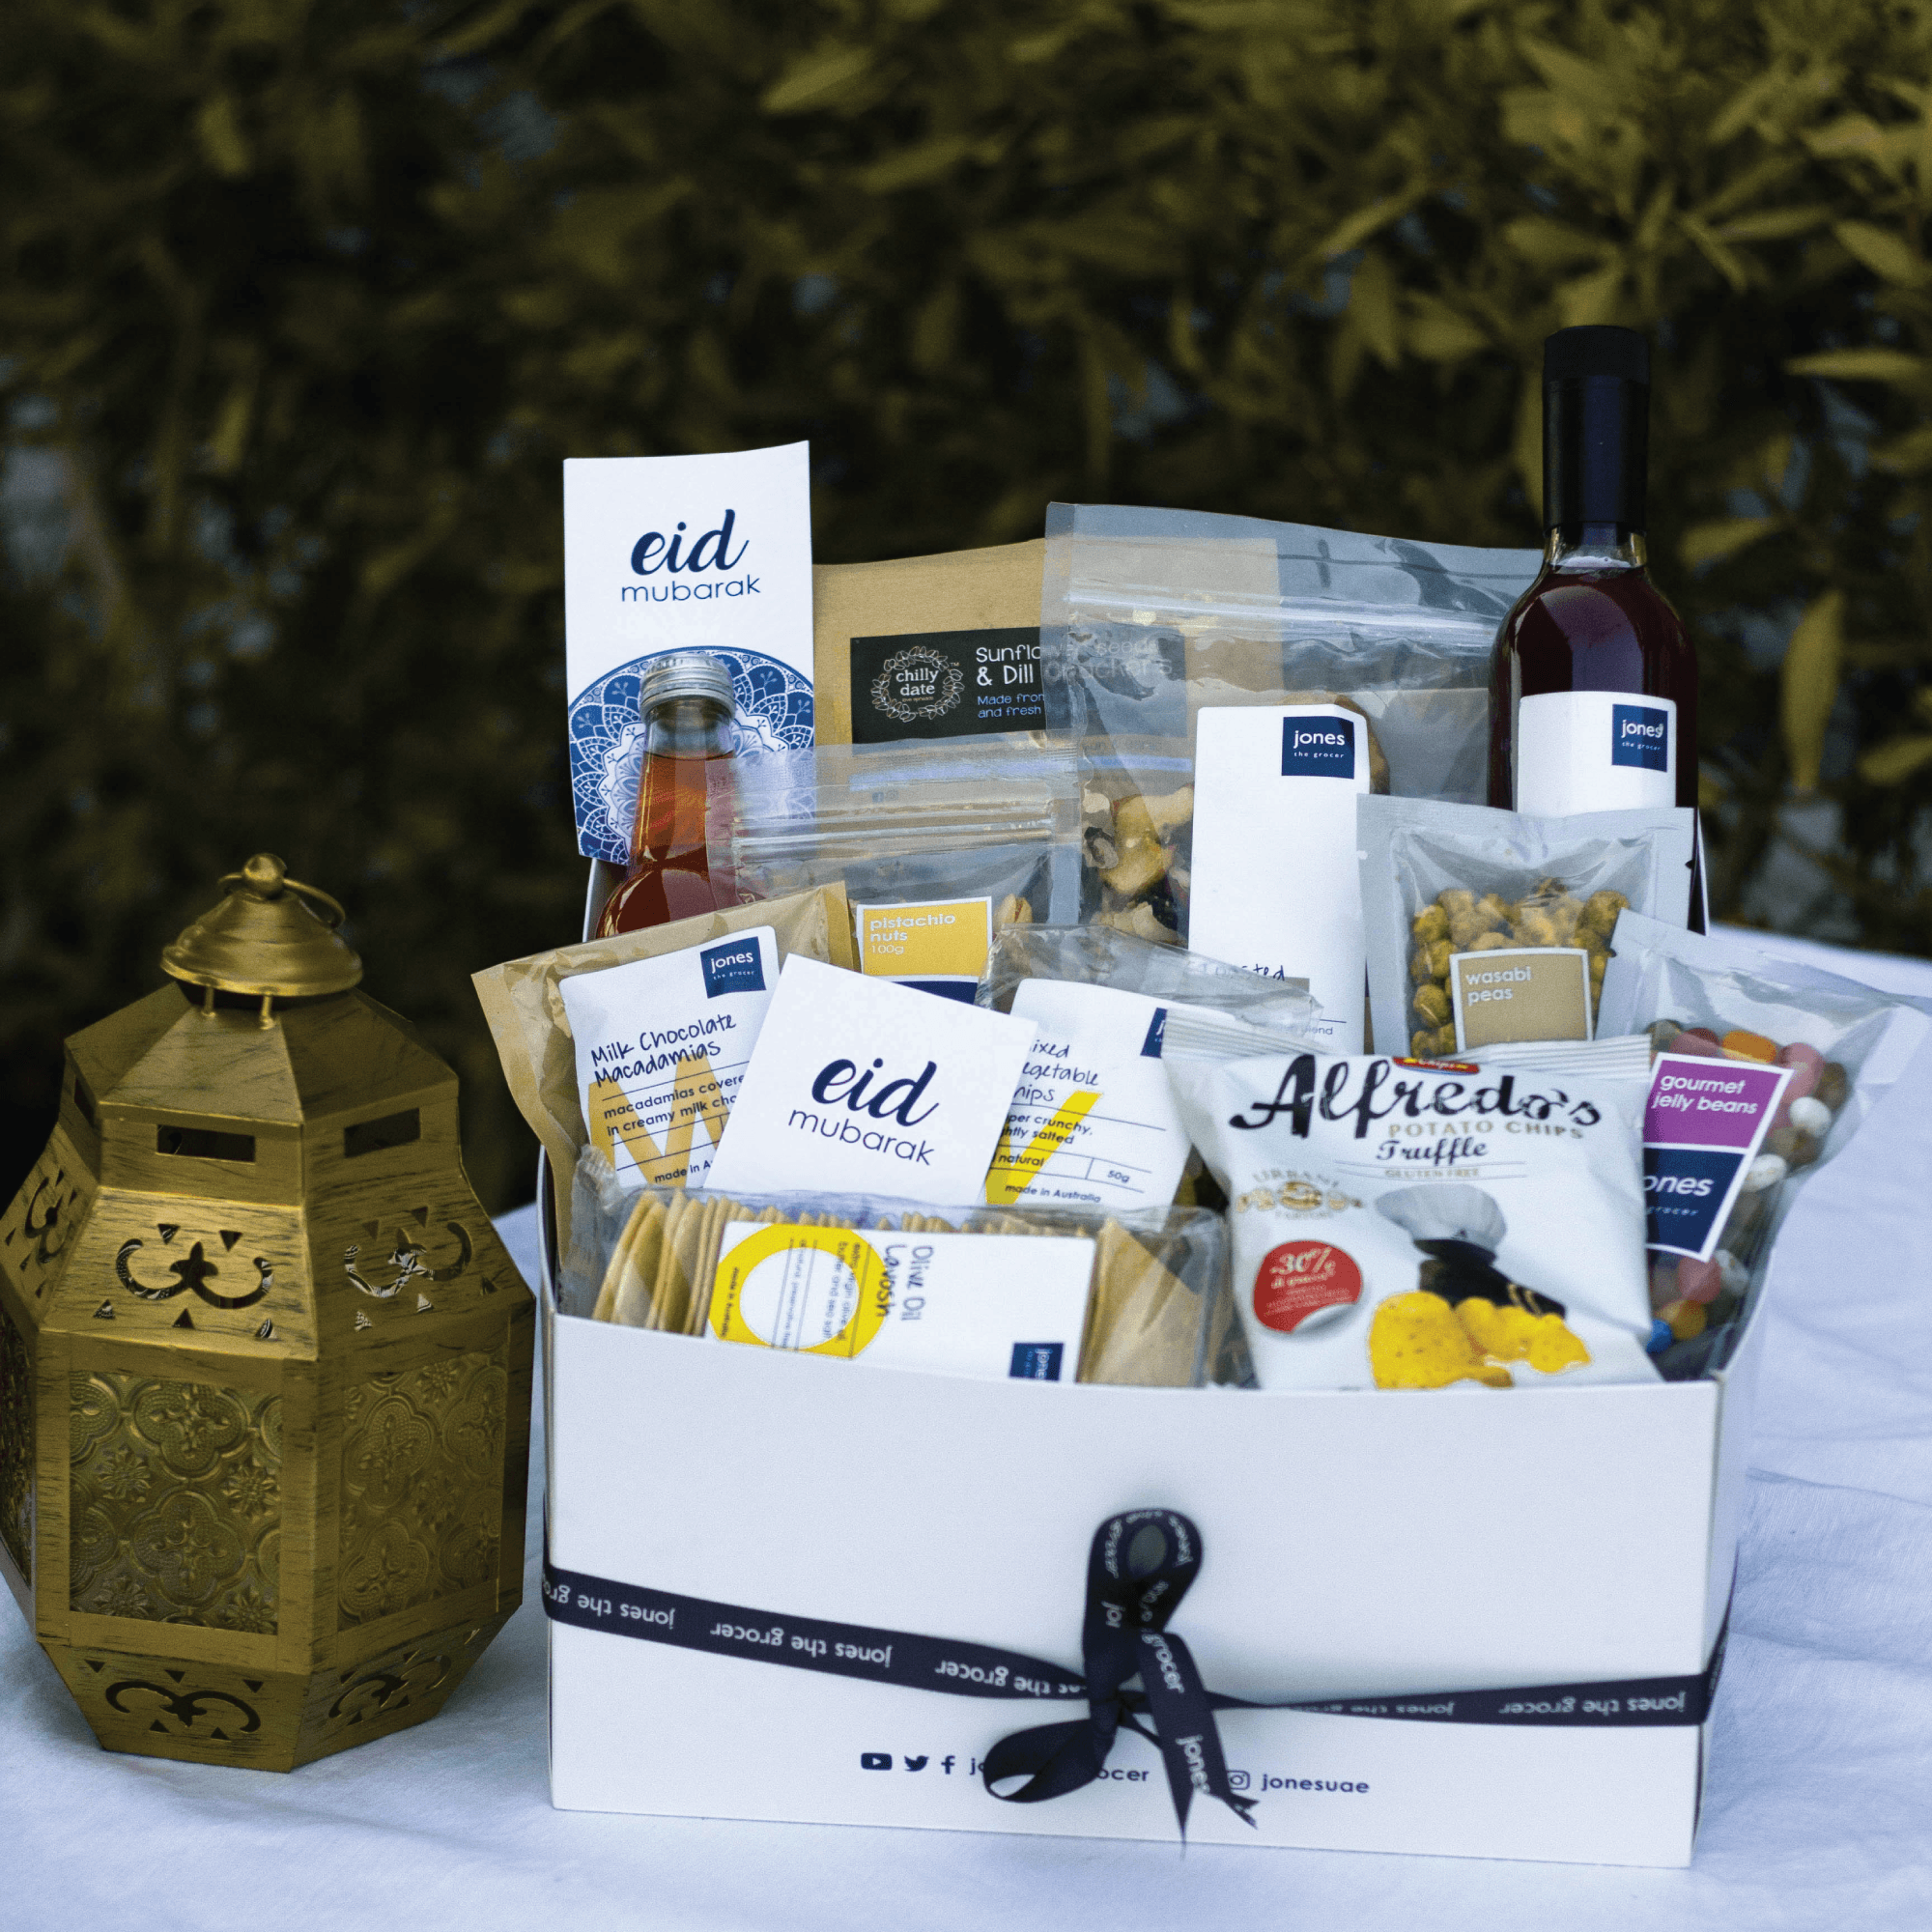 Eid Box Of Delights Gift Hamper Products From Jones The Grocer Uk